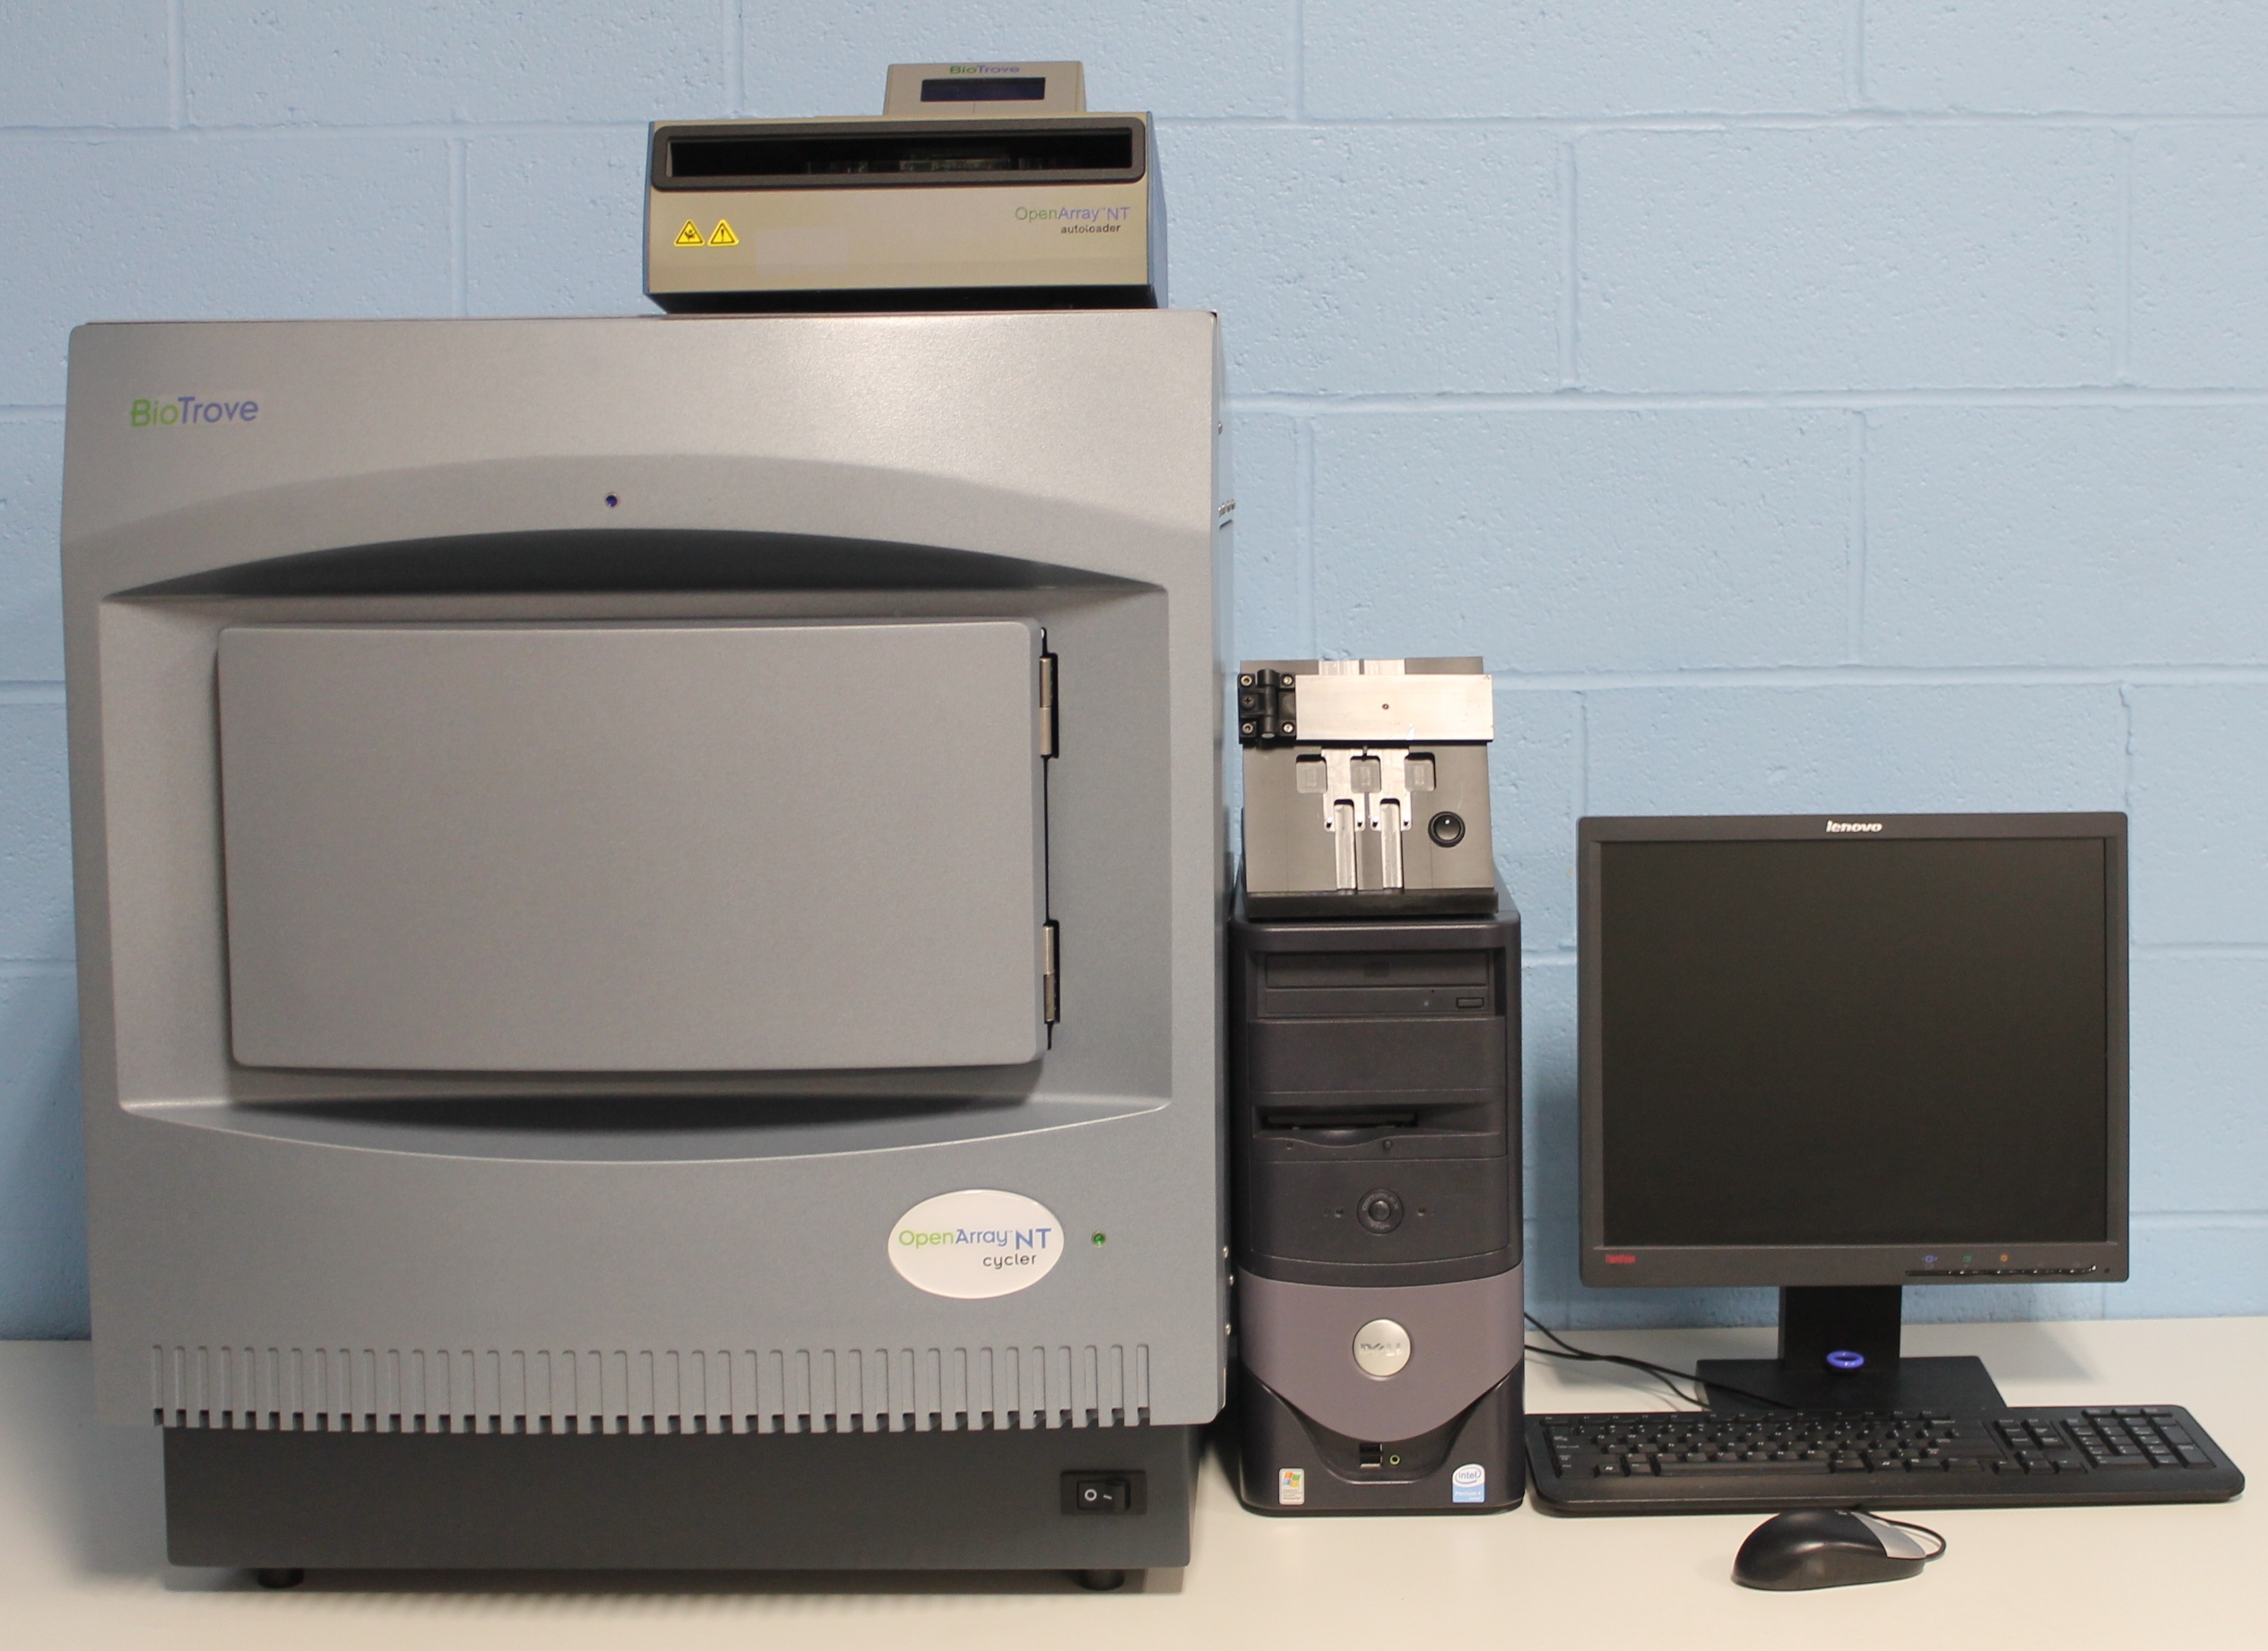 BioTrove 20001 OpenArray NT Cycler System Image